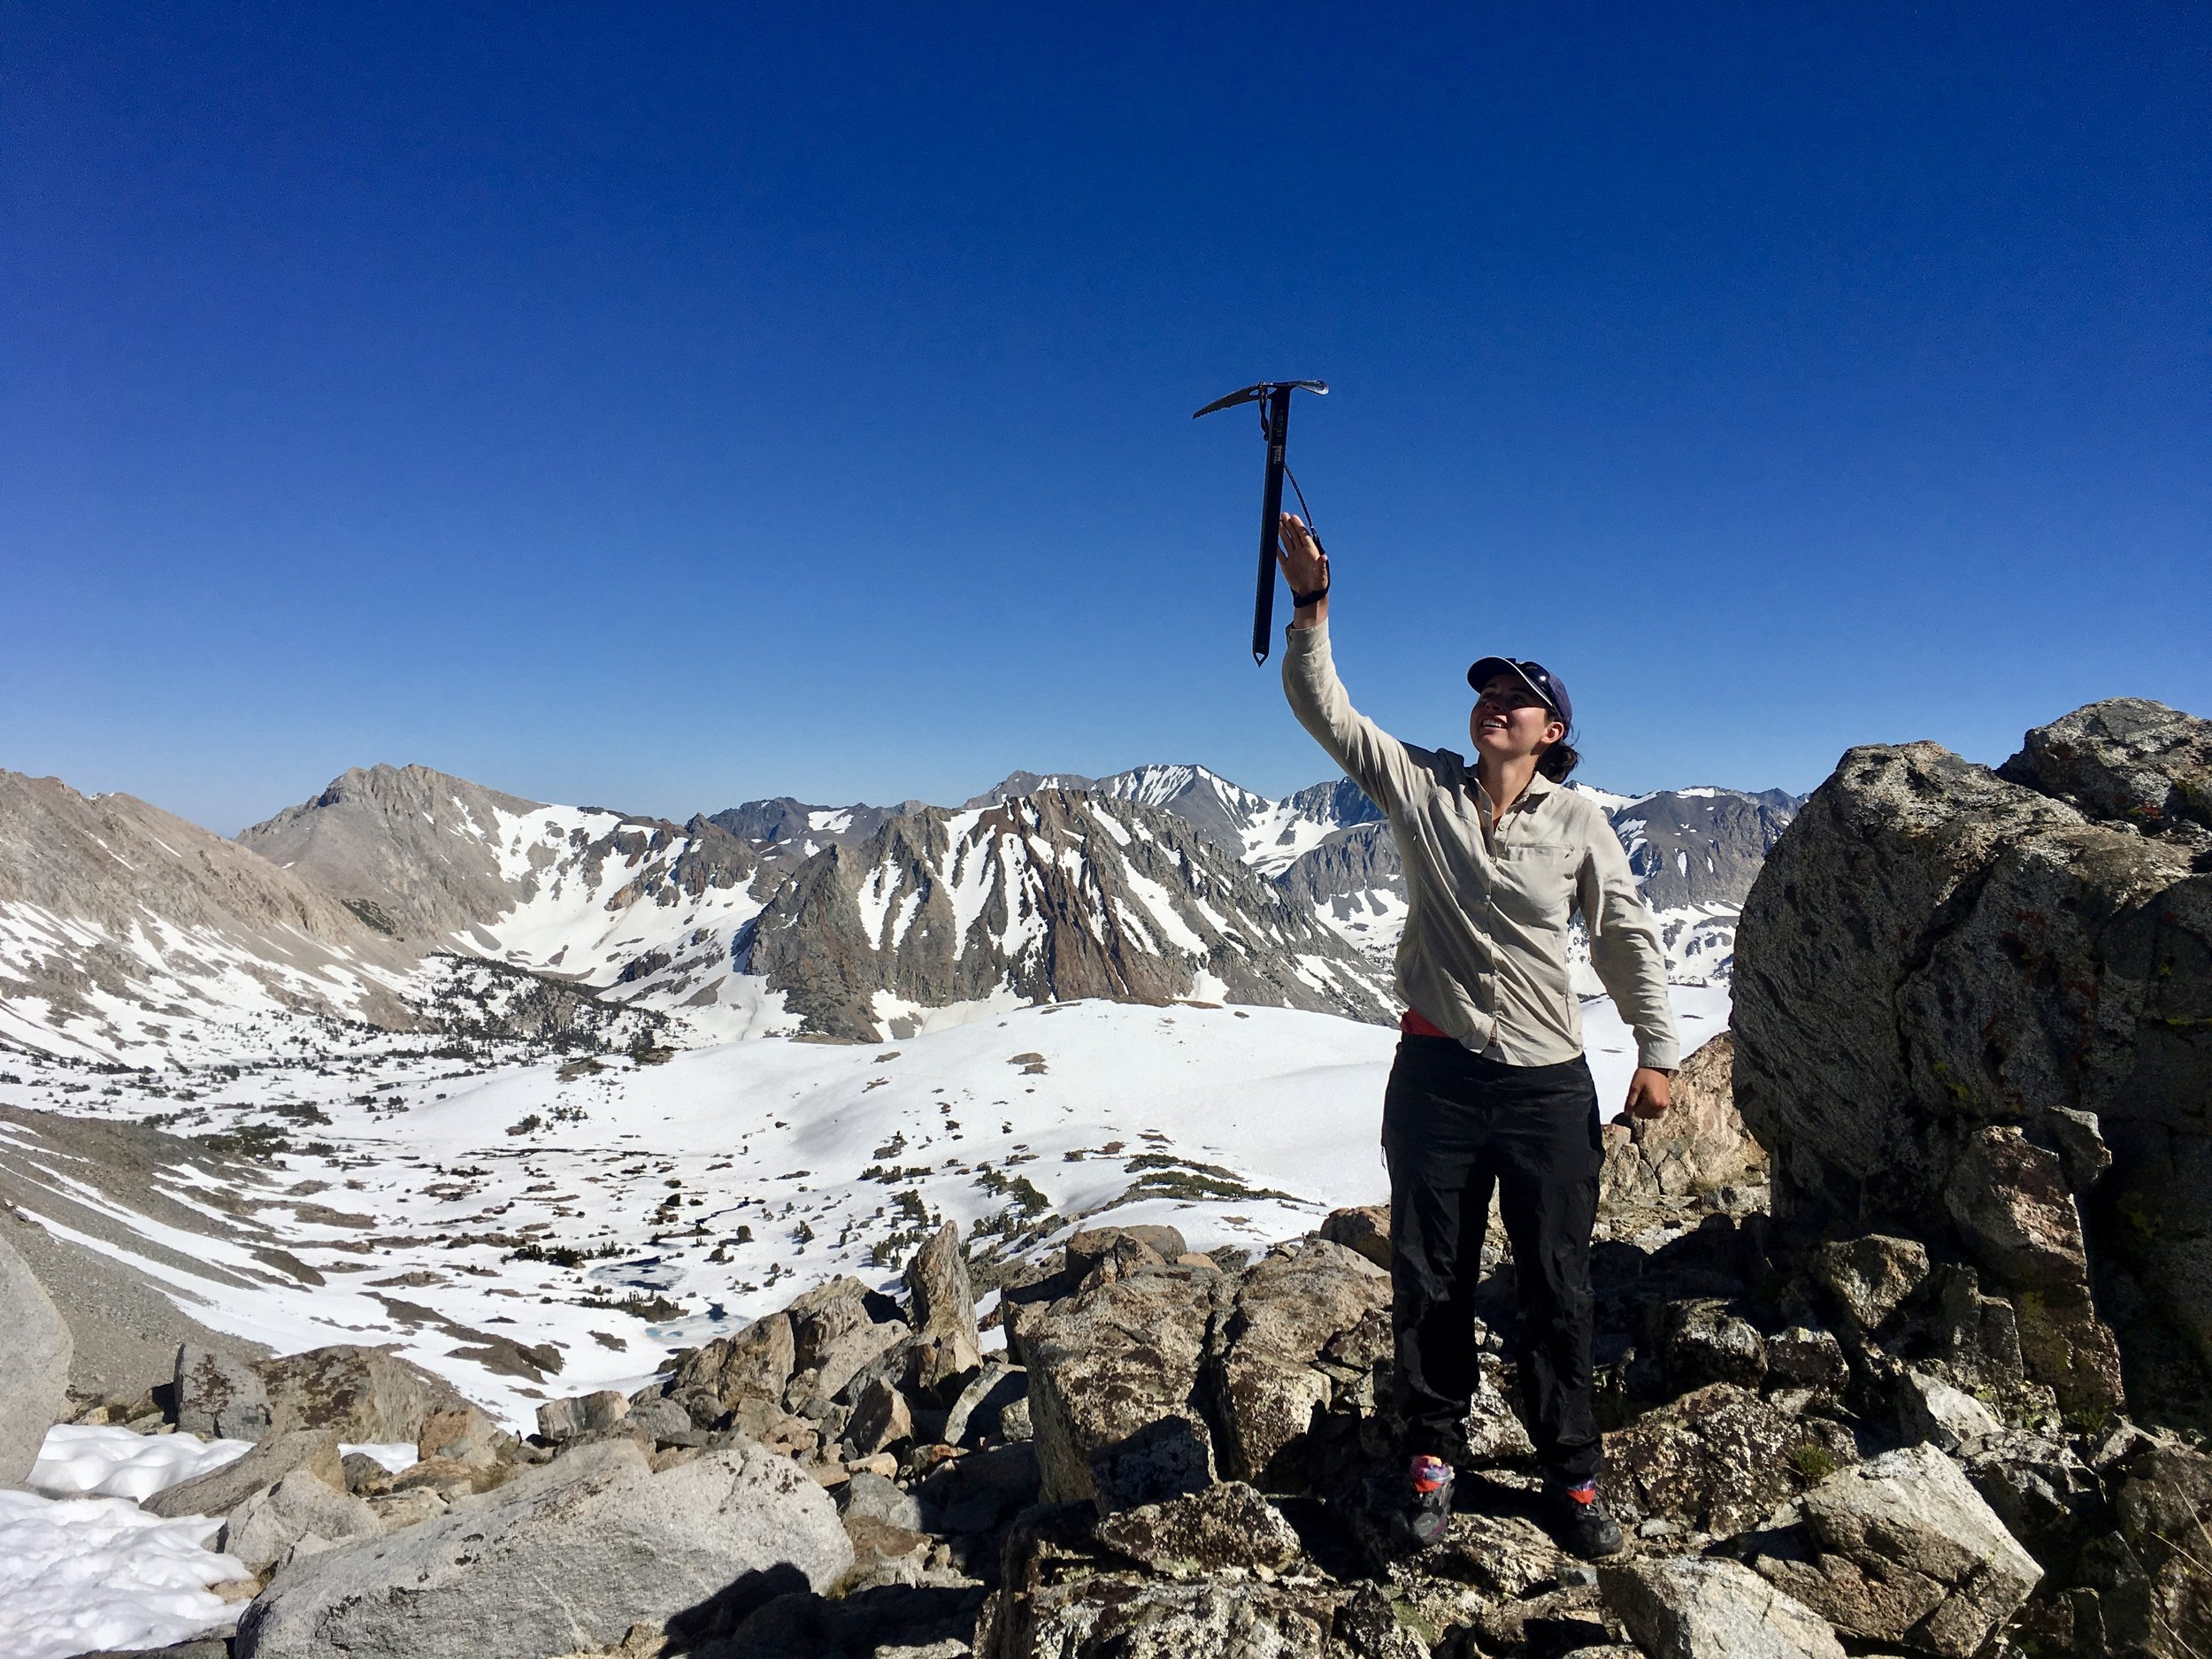 Me and  my trusty ice axe  at the top of Pinchot Pass celebrating another successful climb.